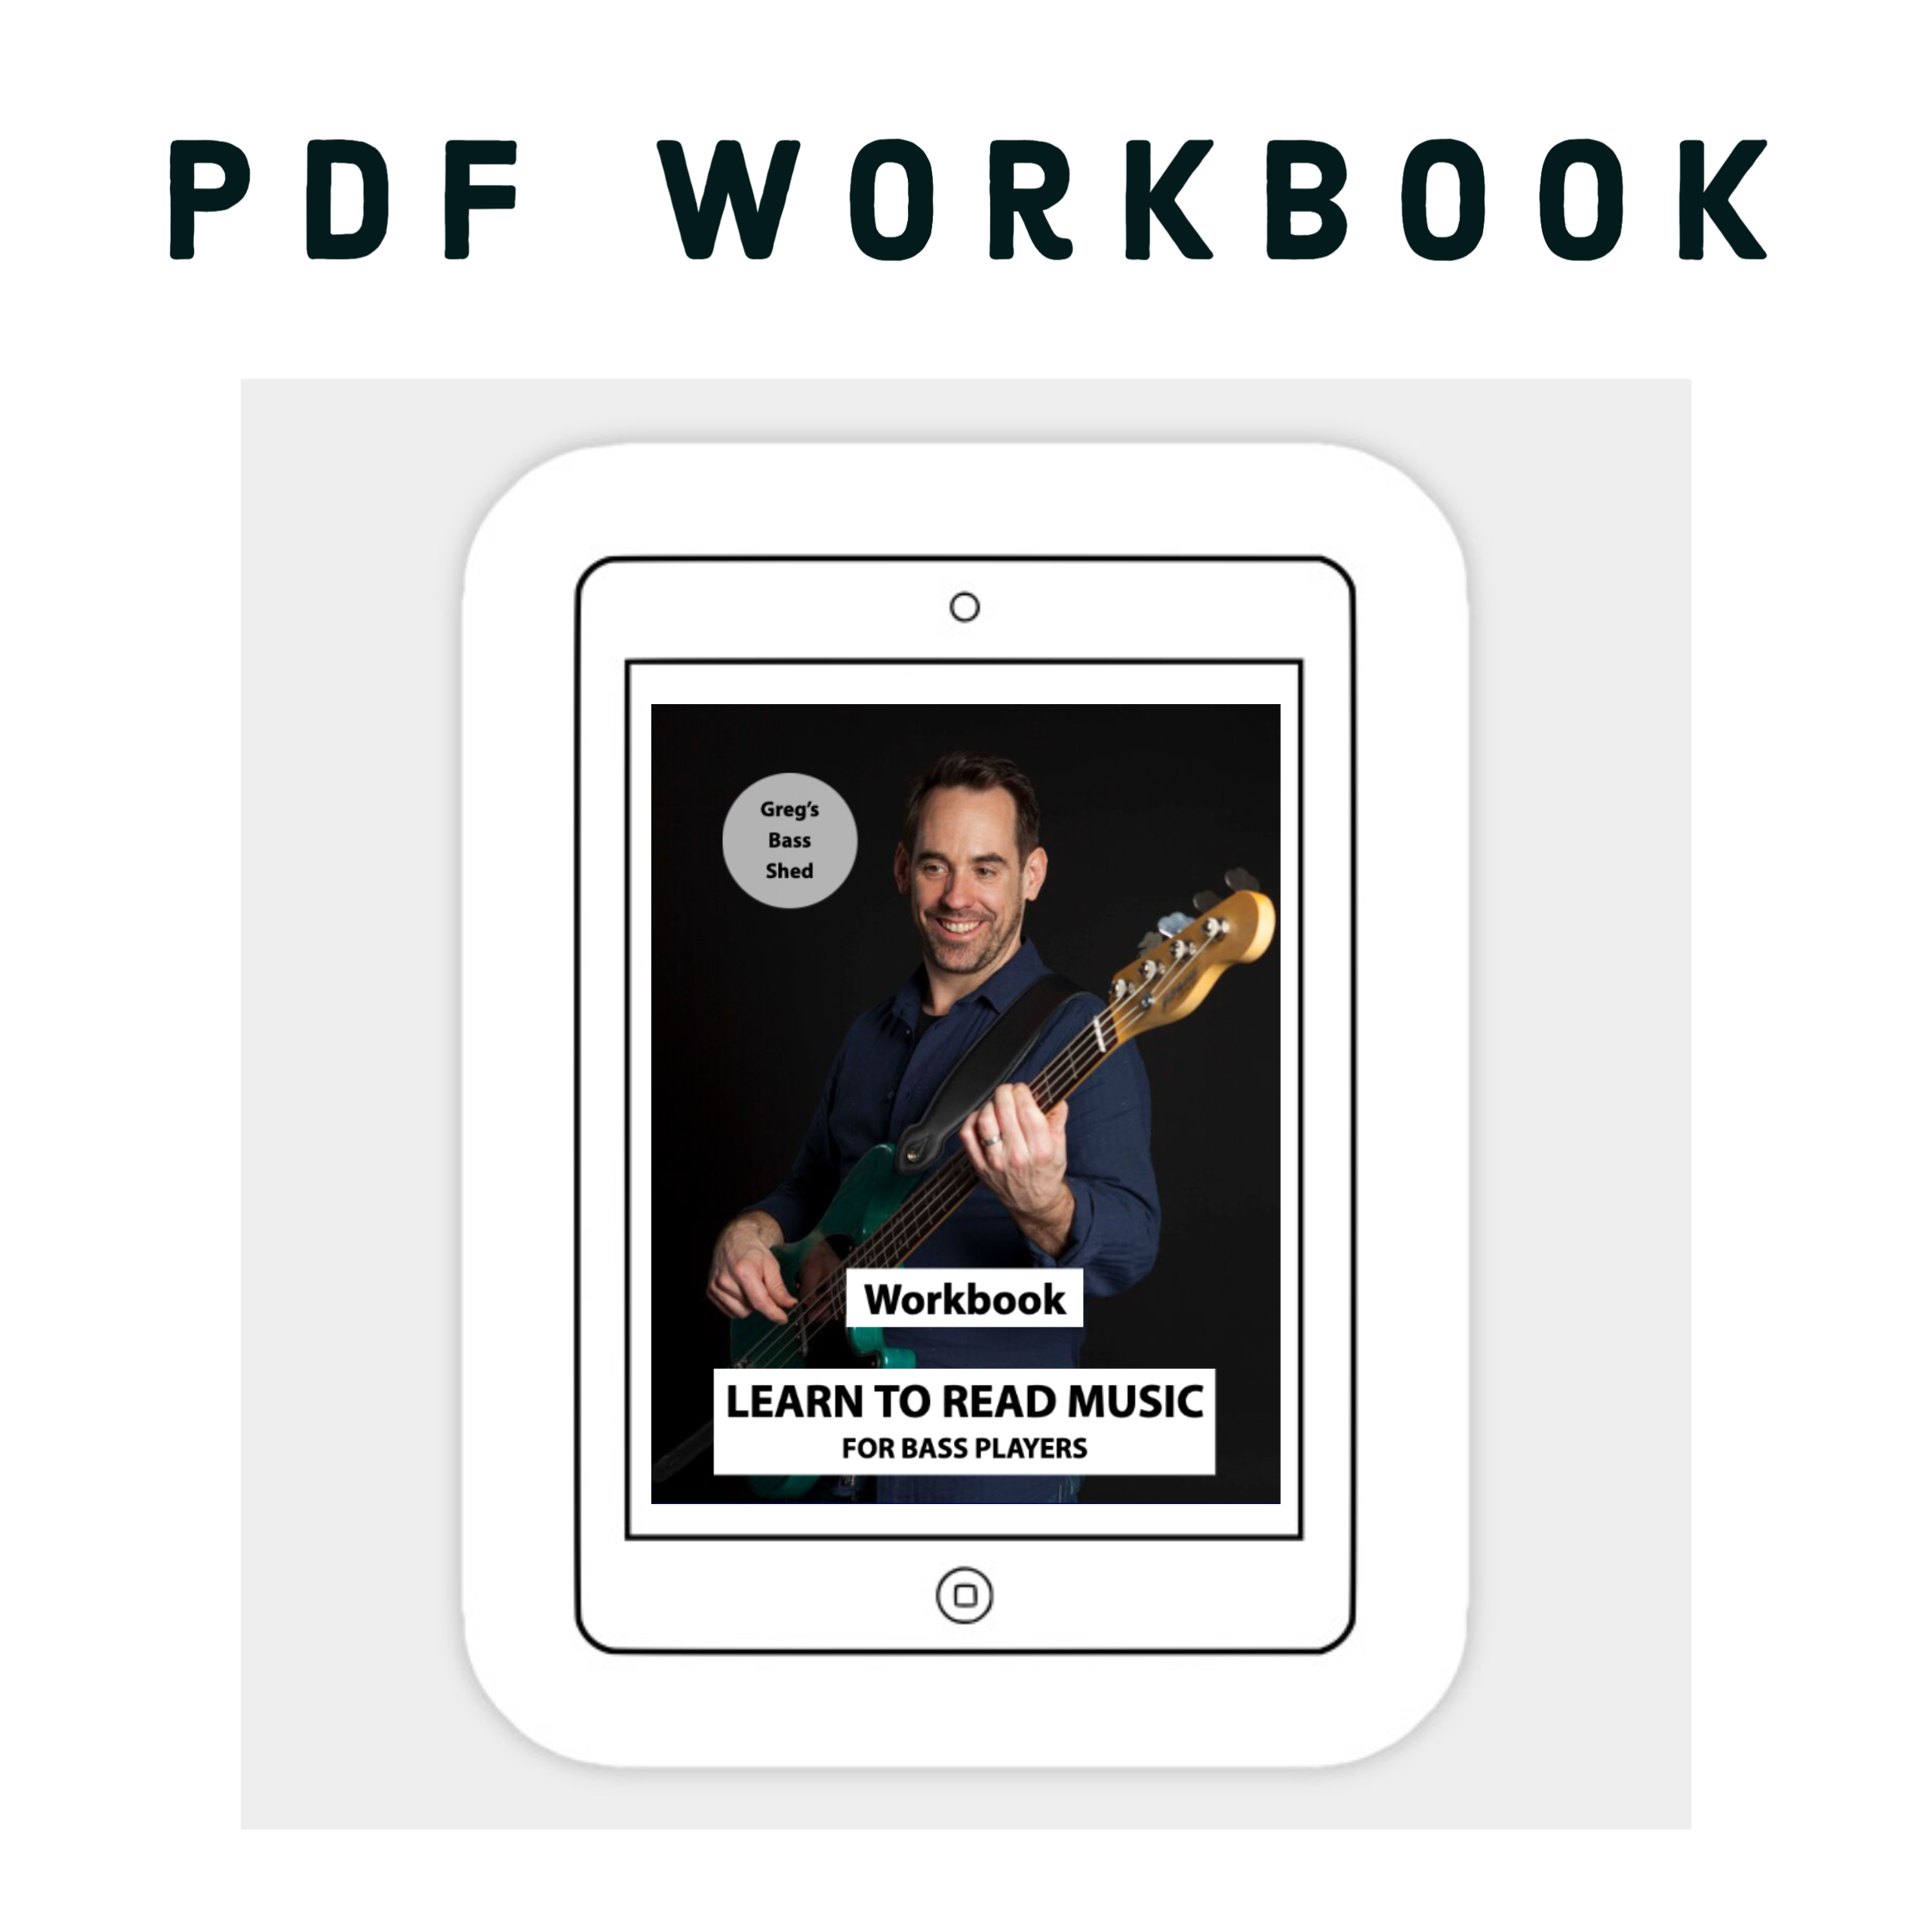 Picture of ipad with workbook for Reading Music Course for bass players